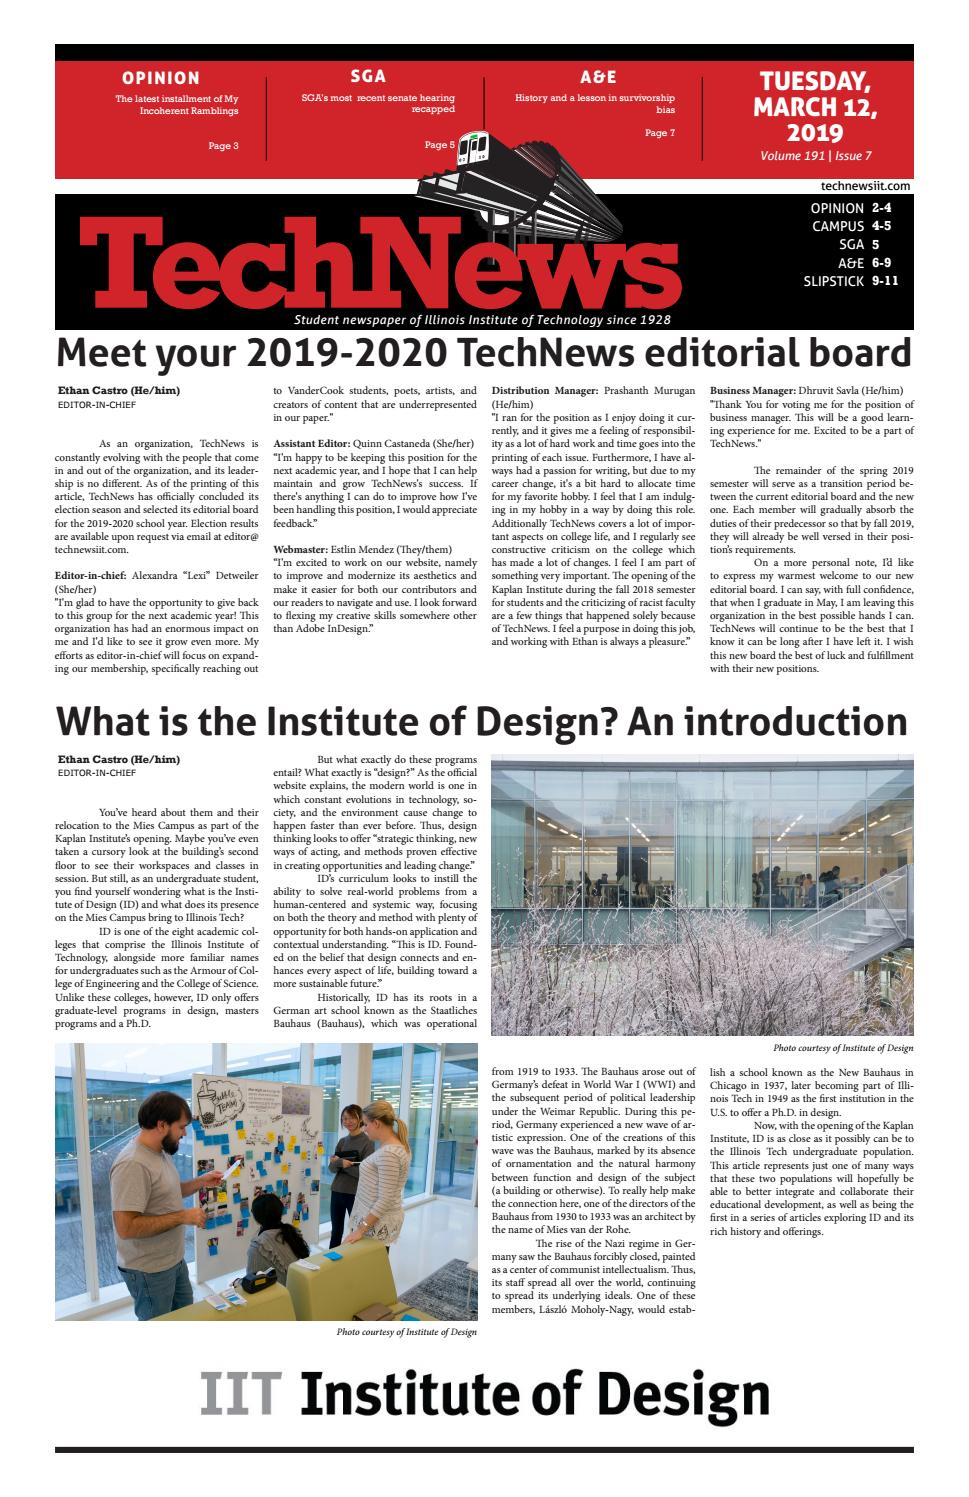 Volume 191 Issue 7 by TechNews - issuu